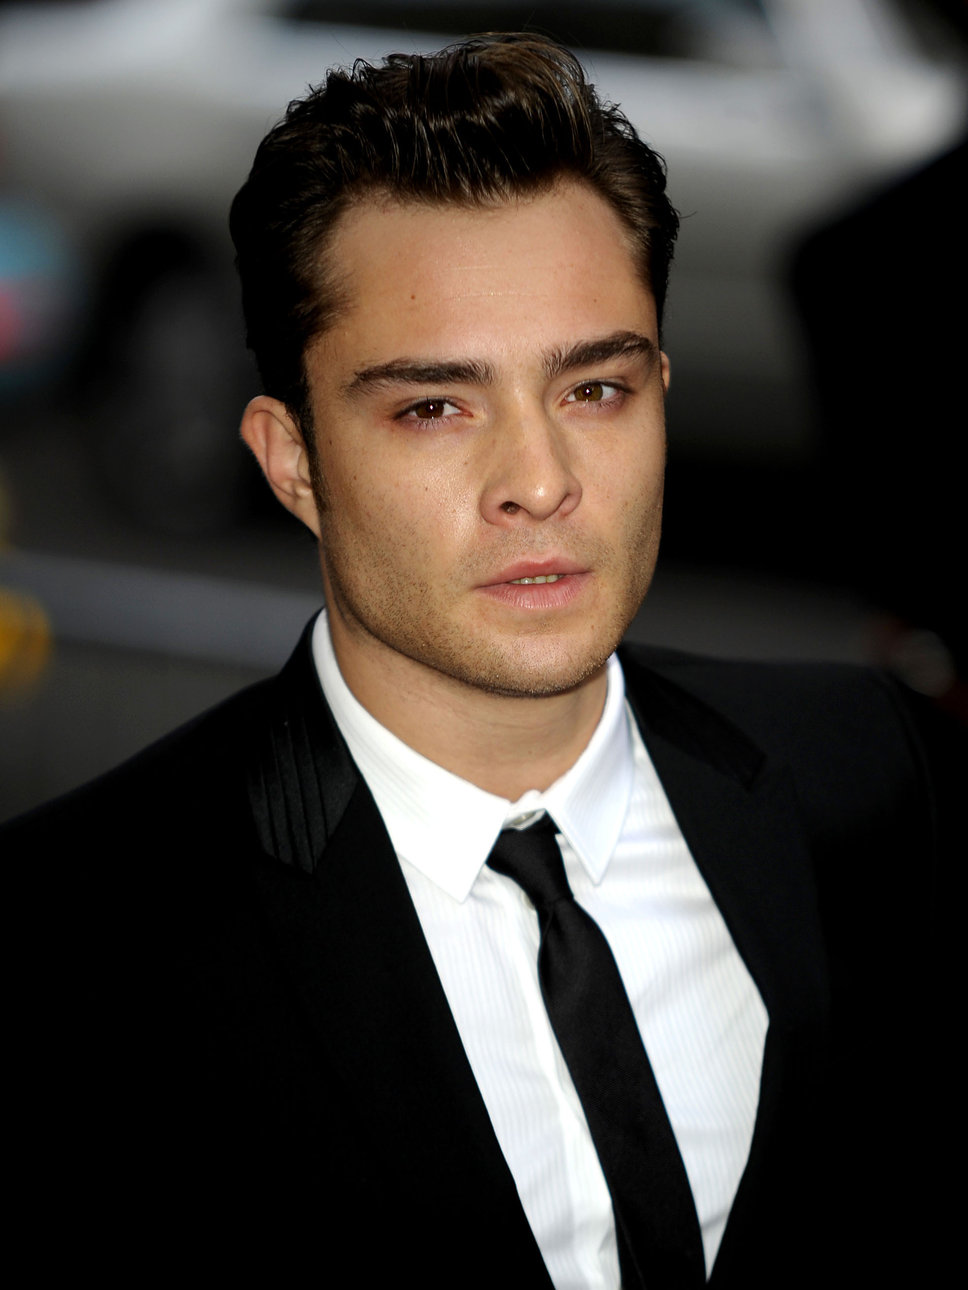 Ed-Westwick-In-Formal-Dress Ed Westwick